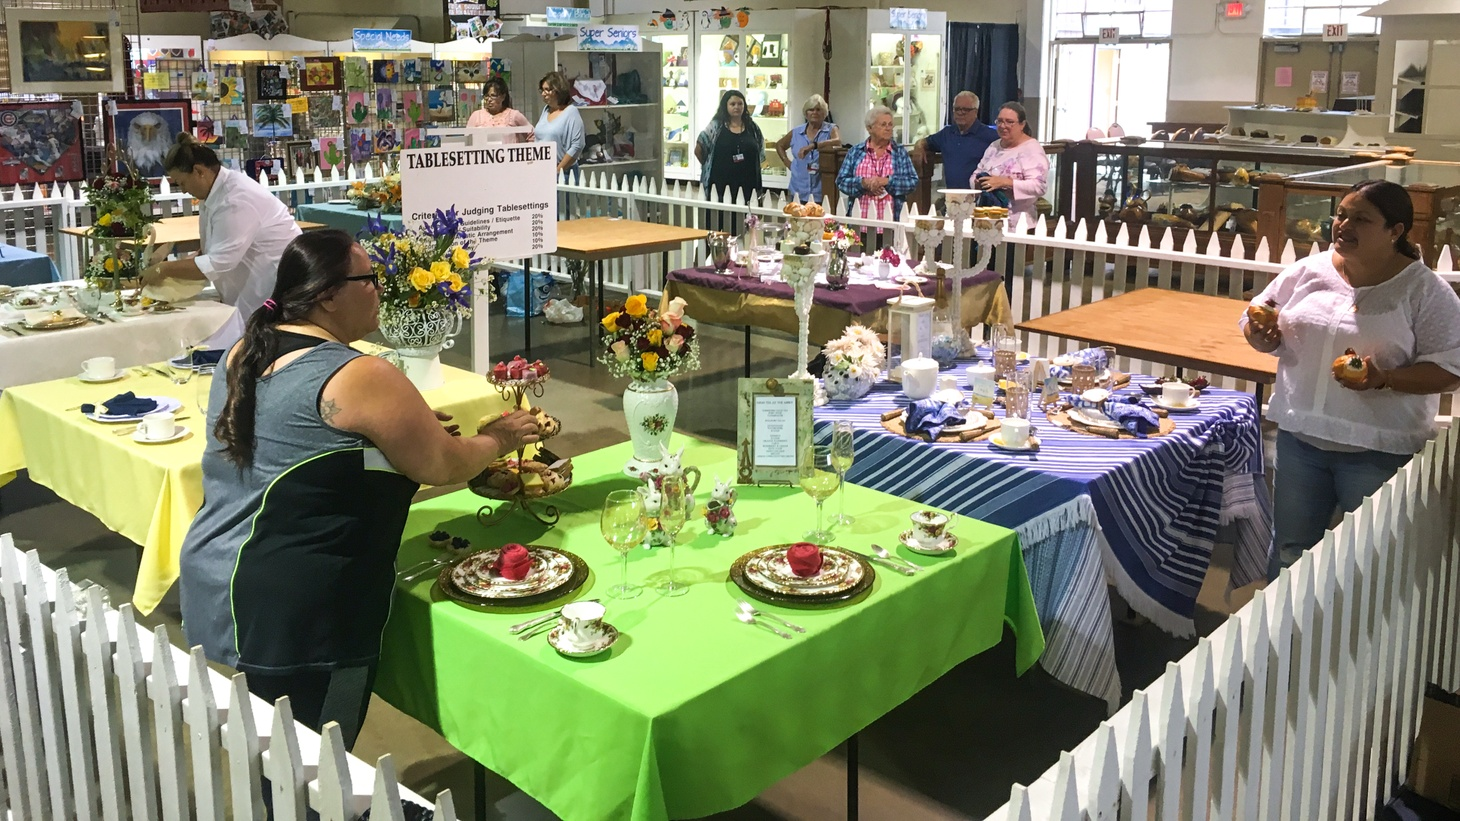 Competitors in the 2019 table setting competition at the Ventura County Fair.